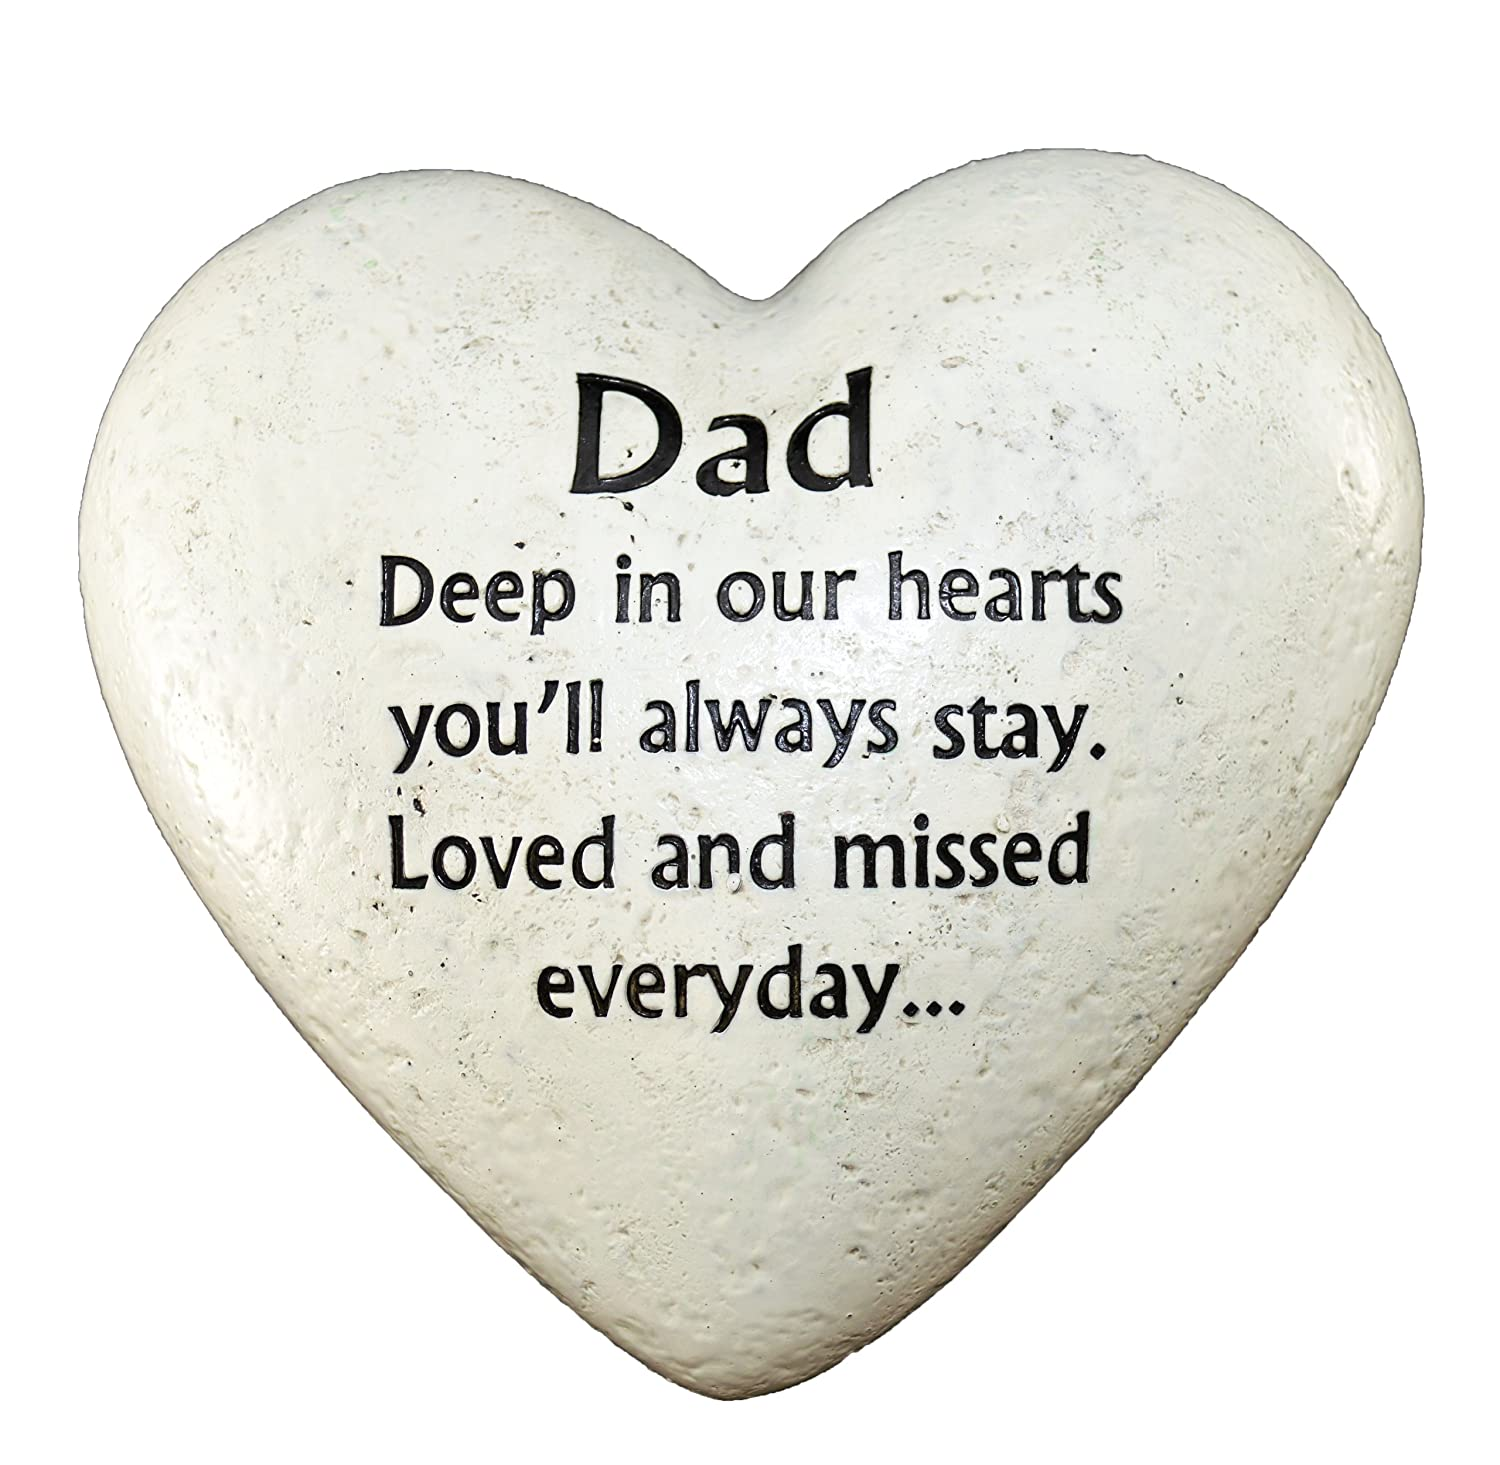 heart resin stone effect outdoor plaque graveside memorial ornament dad ebay. Black Bedroom Furniture Sets. Home Design Ideas